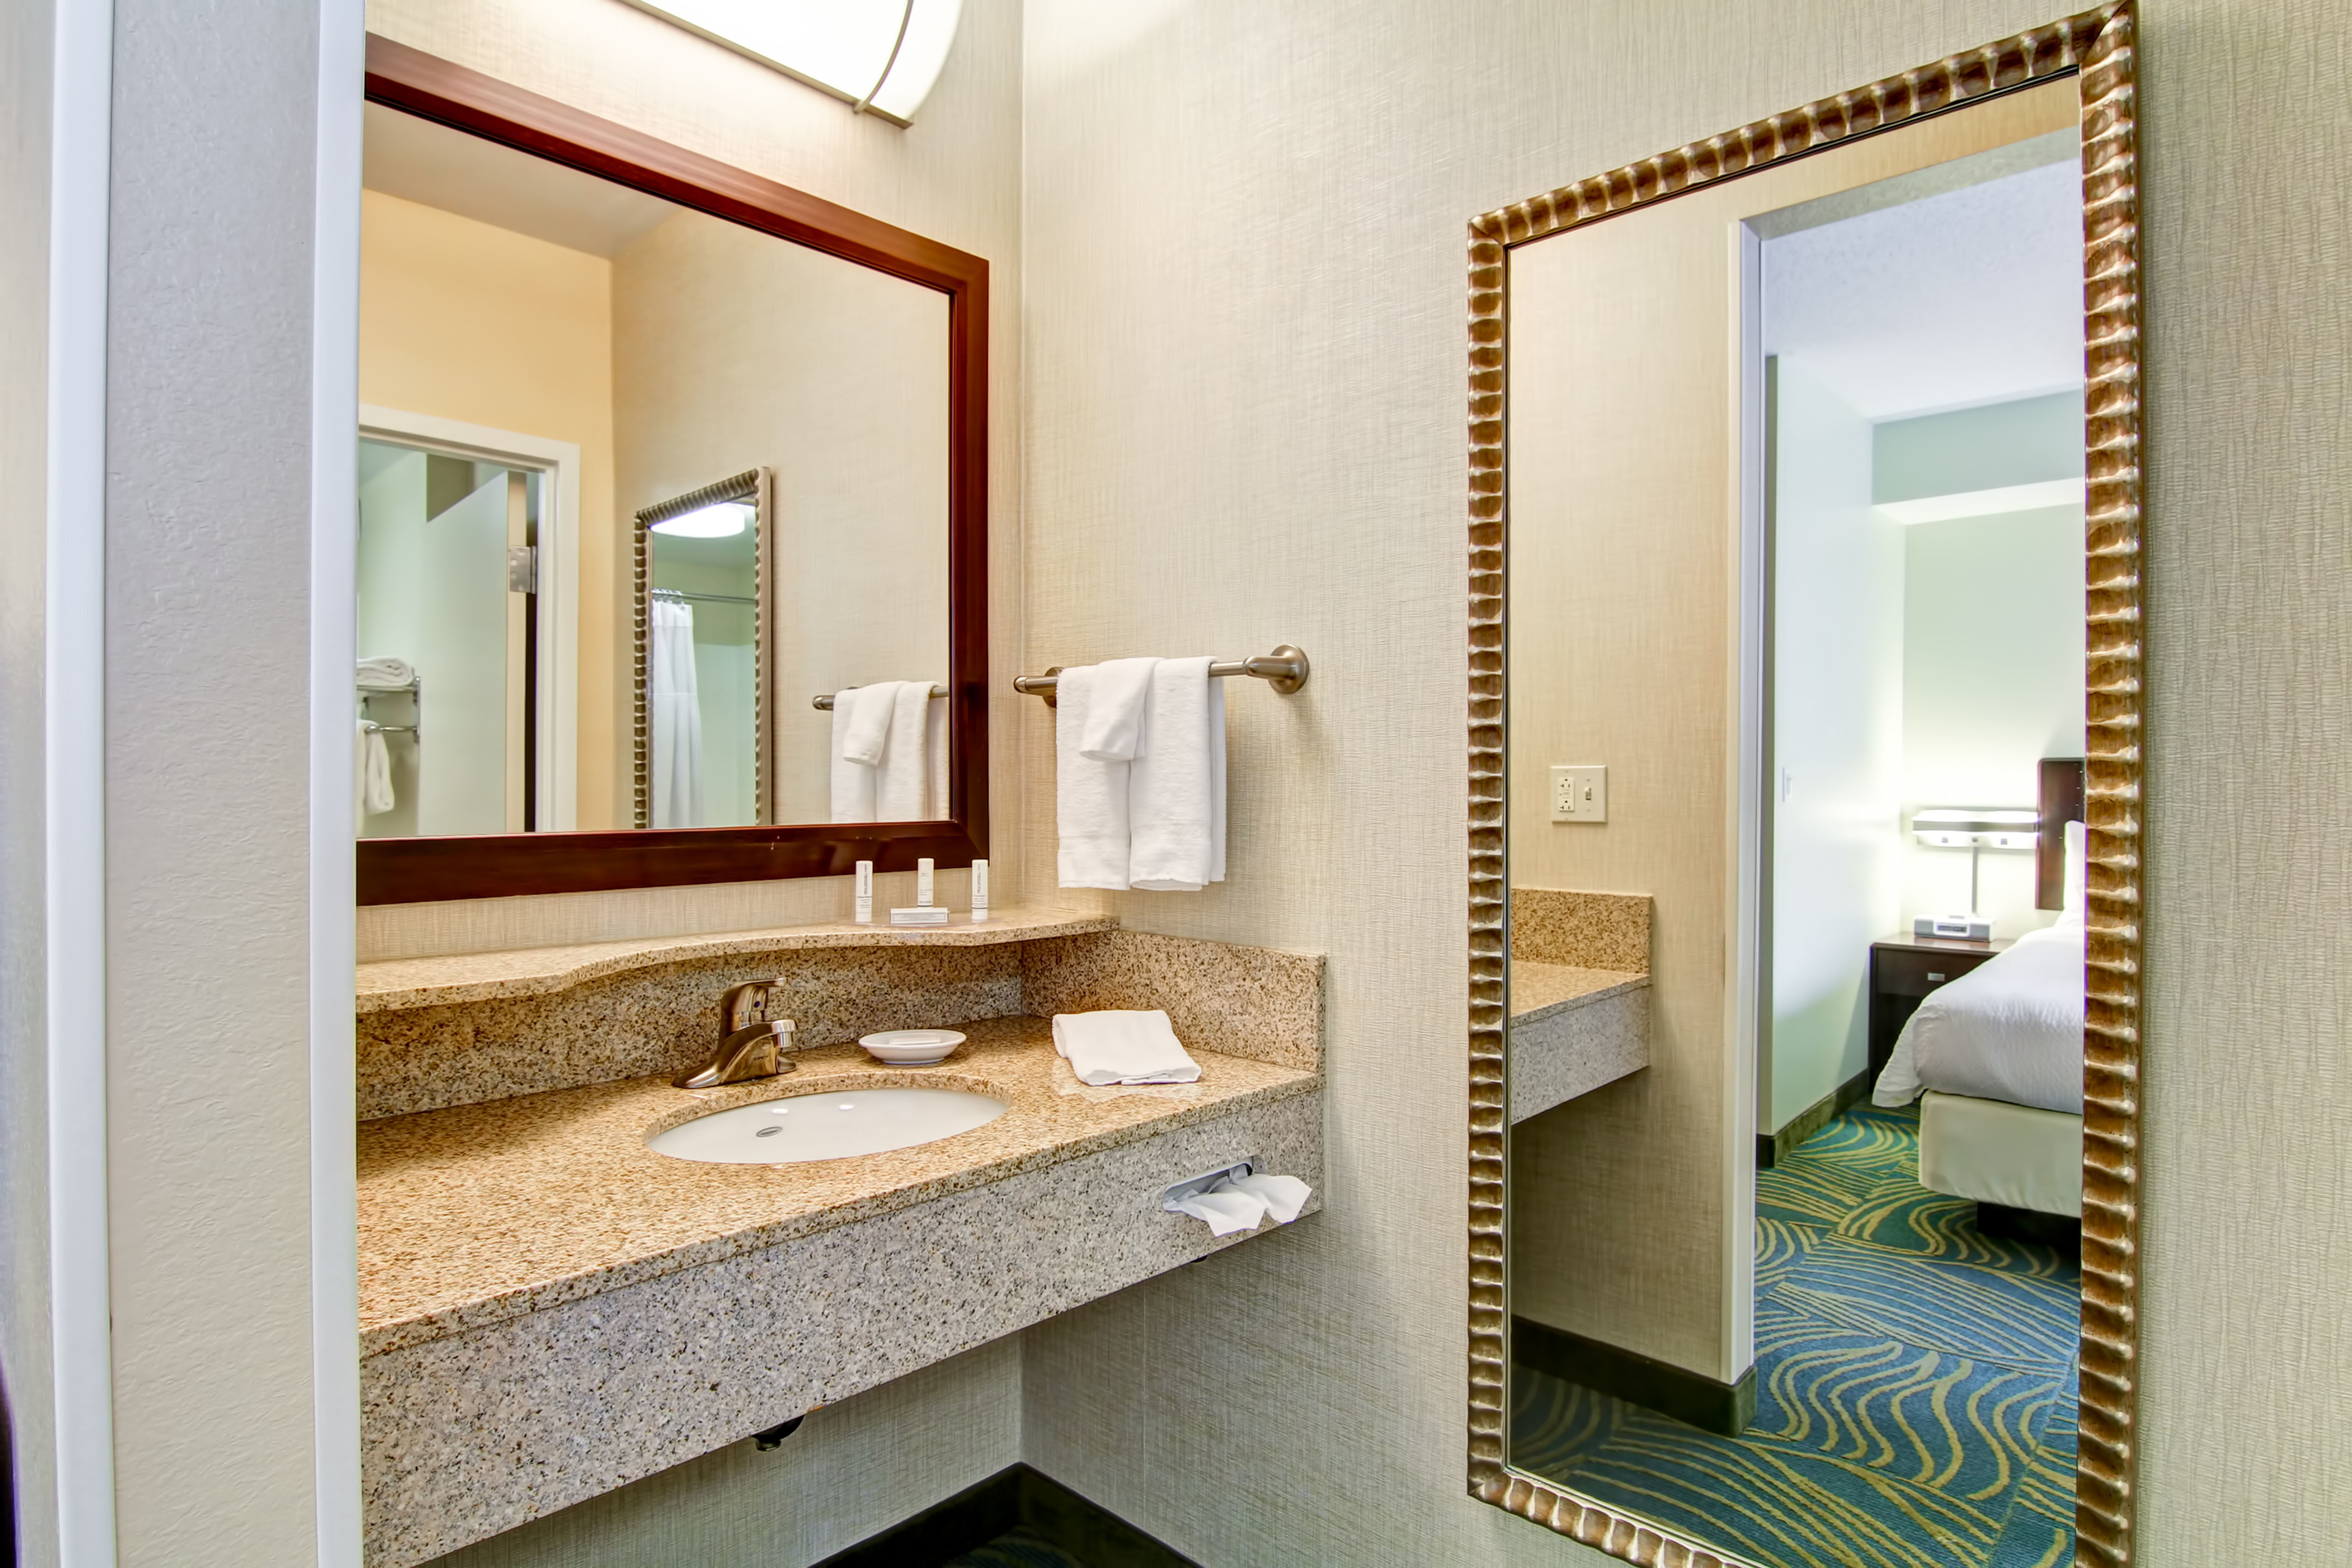 SpringHill Suites by Marriott Erie image 8